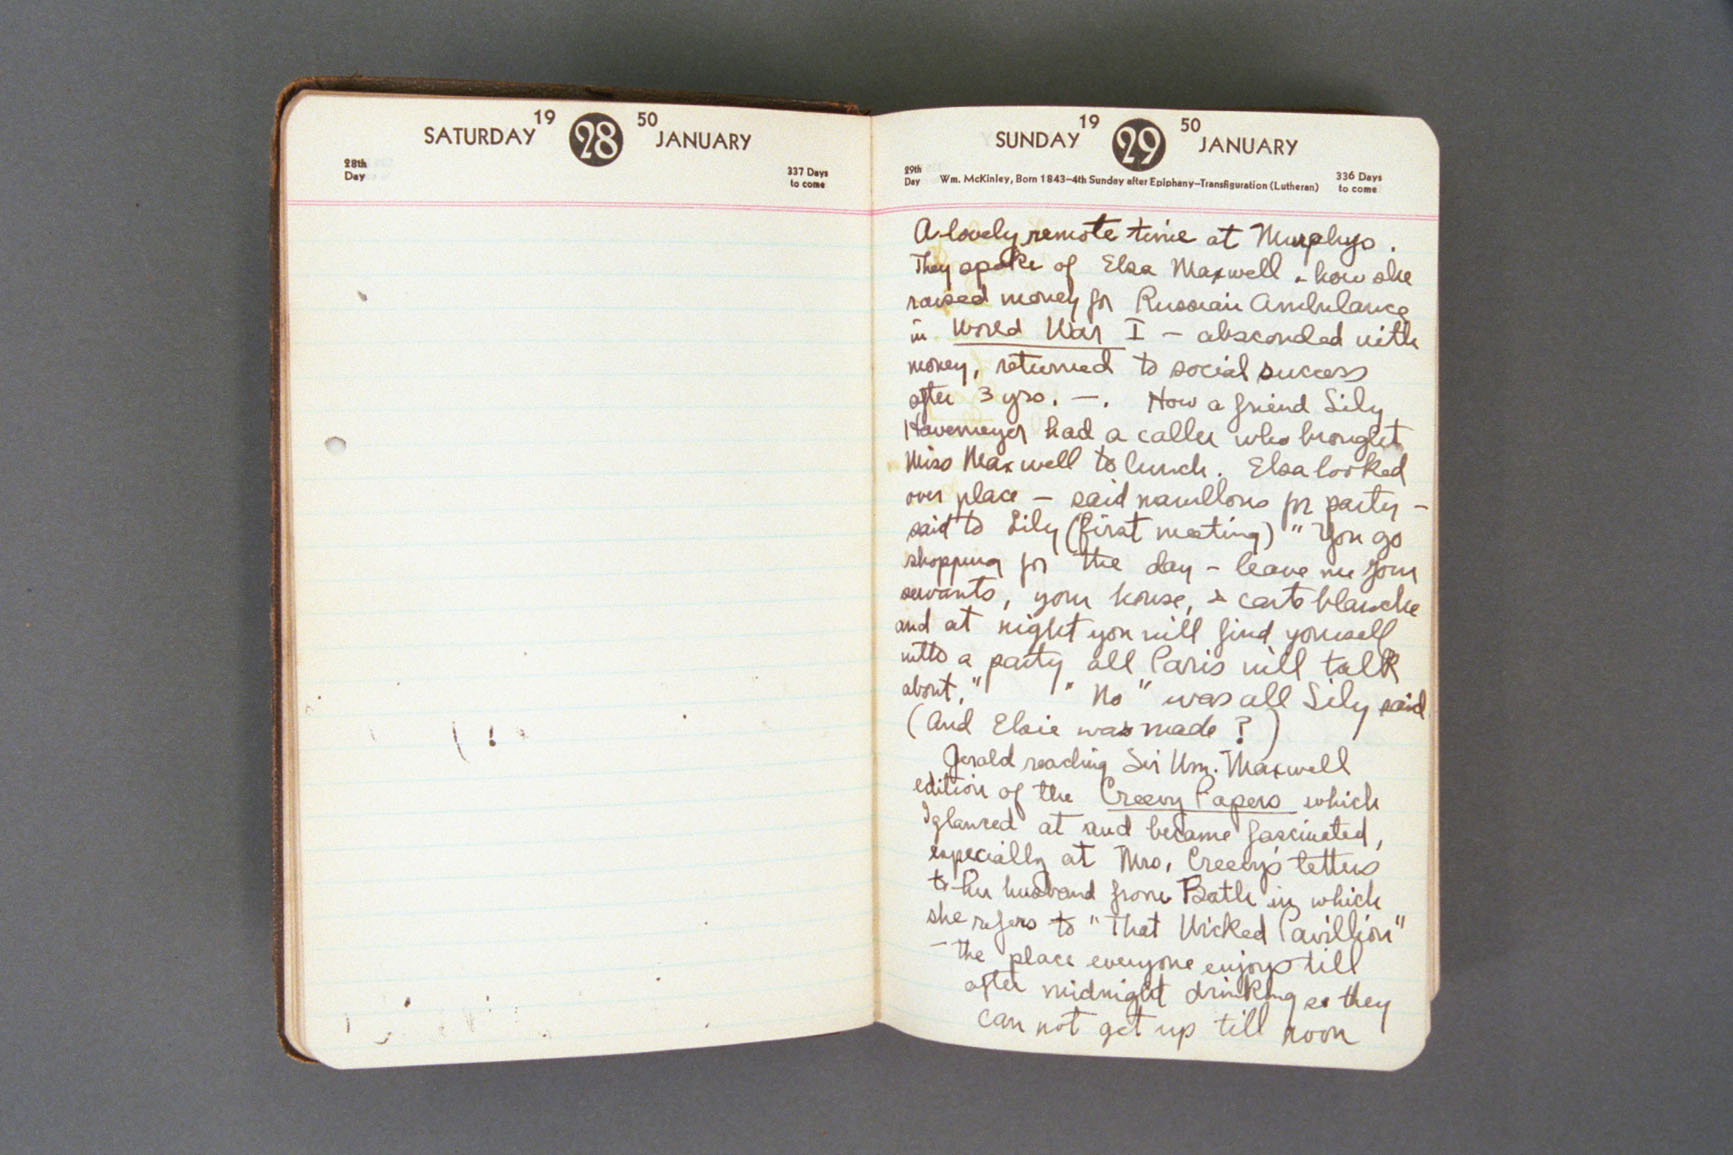 1950 diary excerpt a